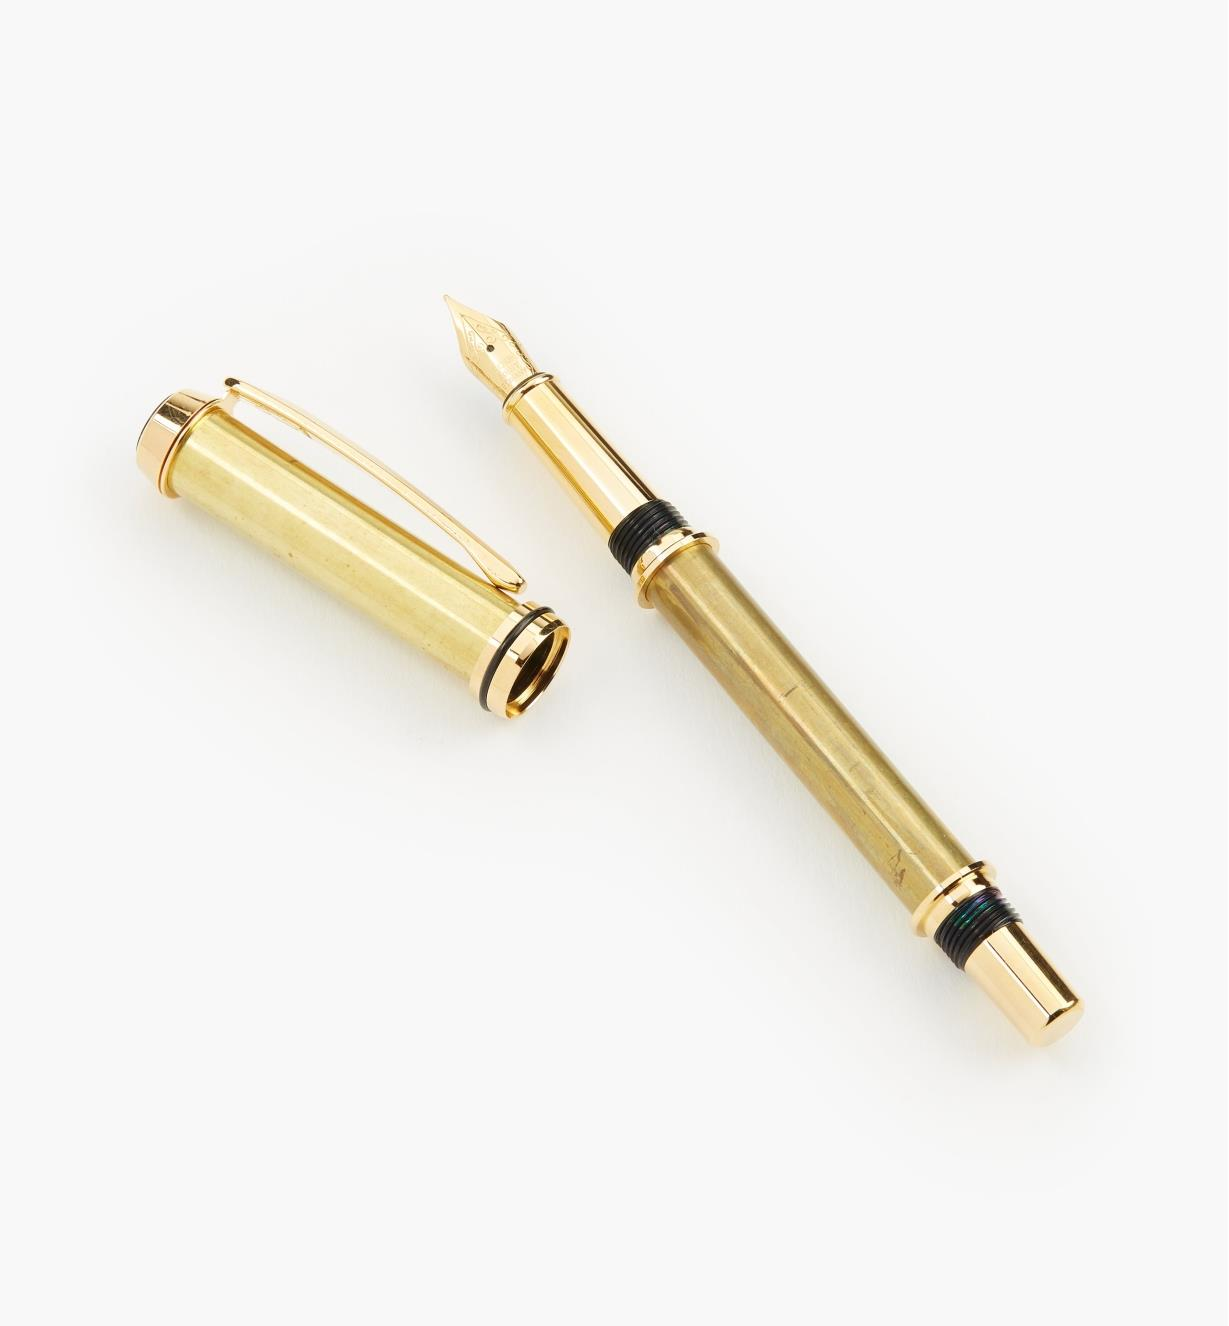 88K7672 - Baron Fountain Pen, Titanium-Gold